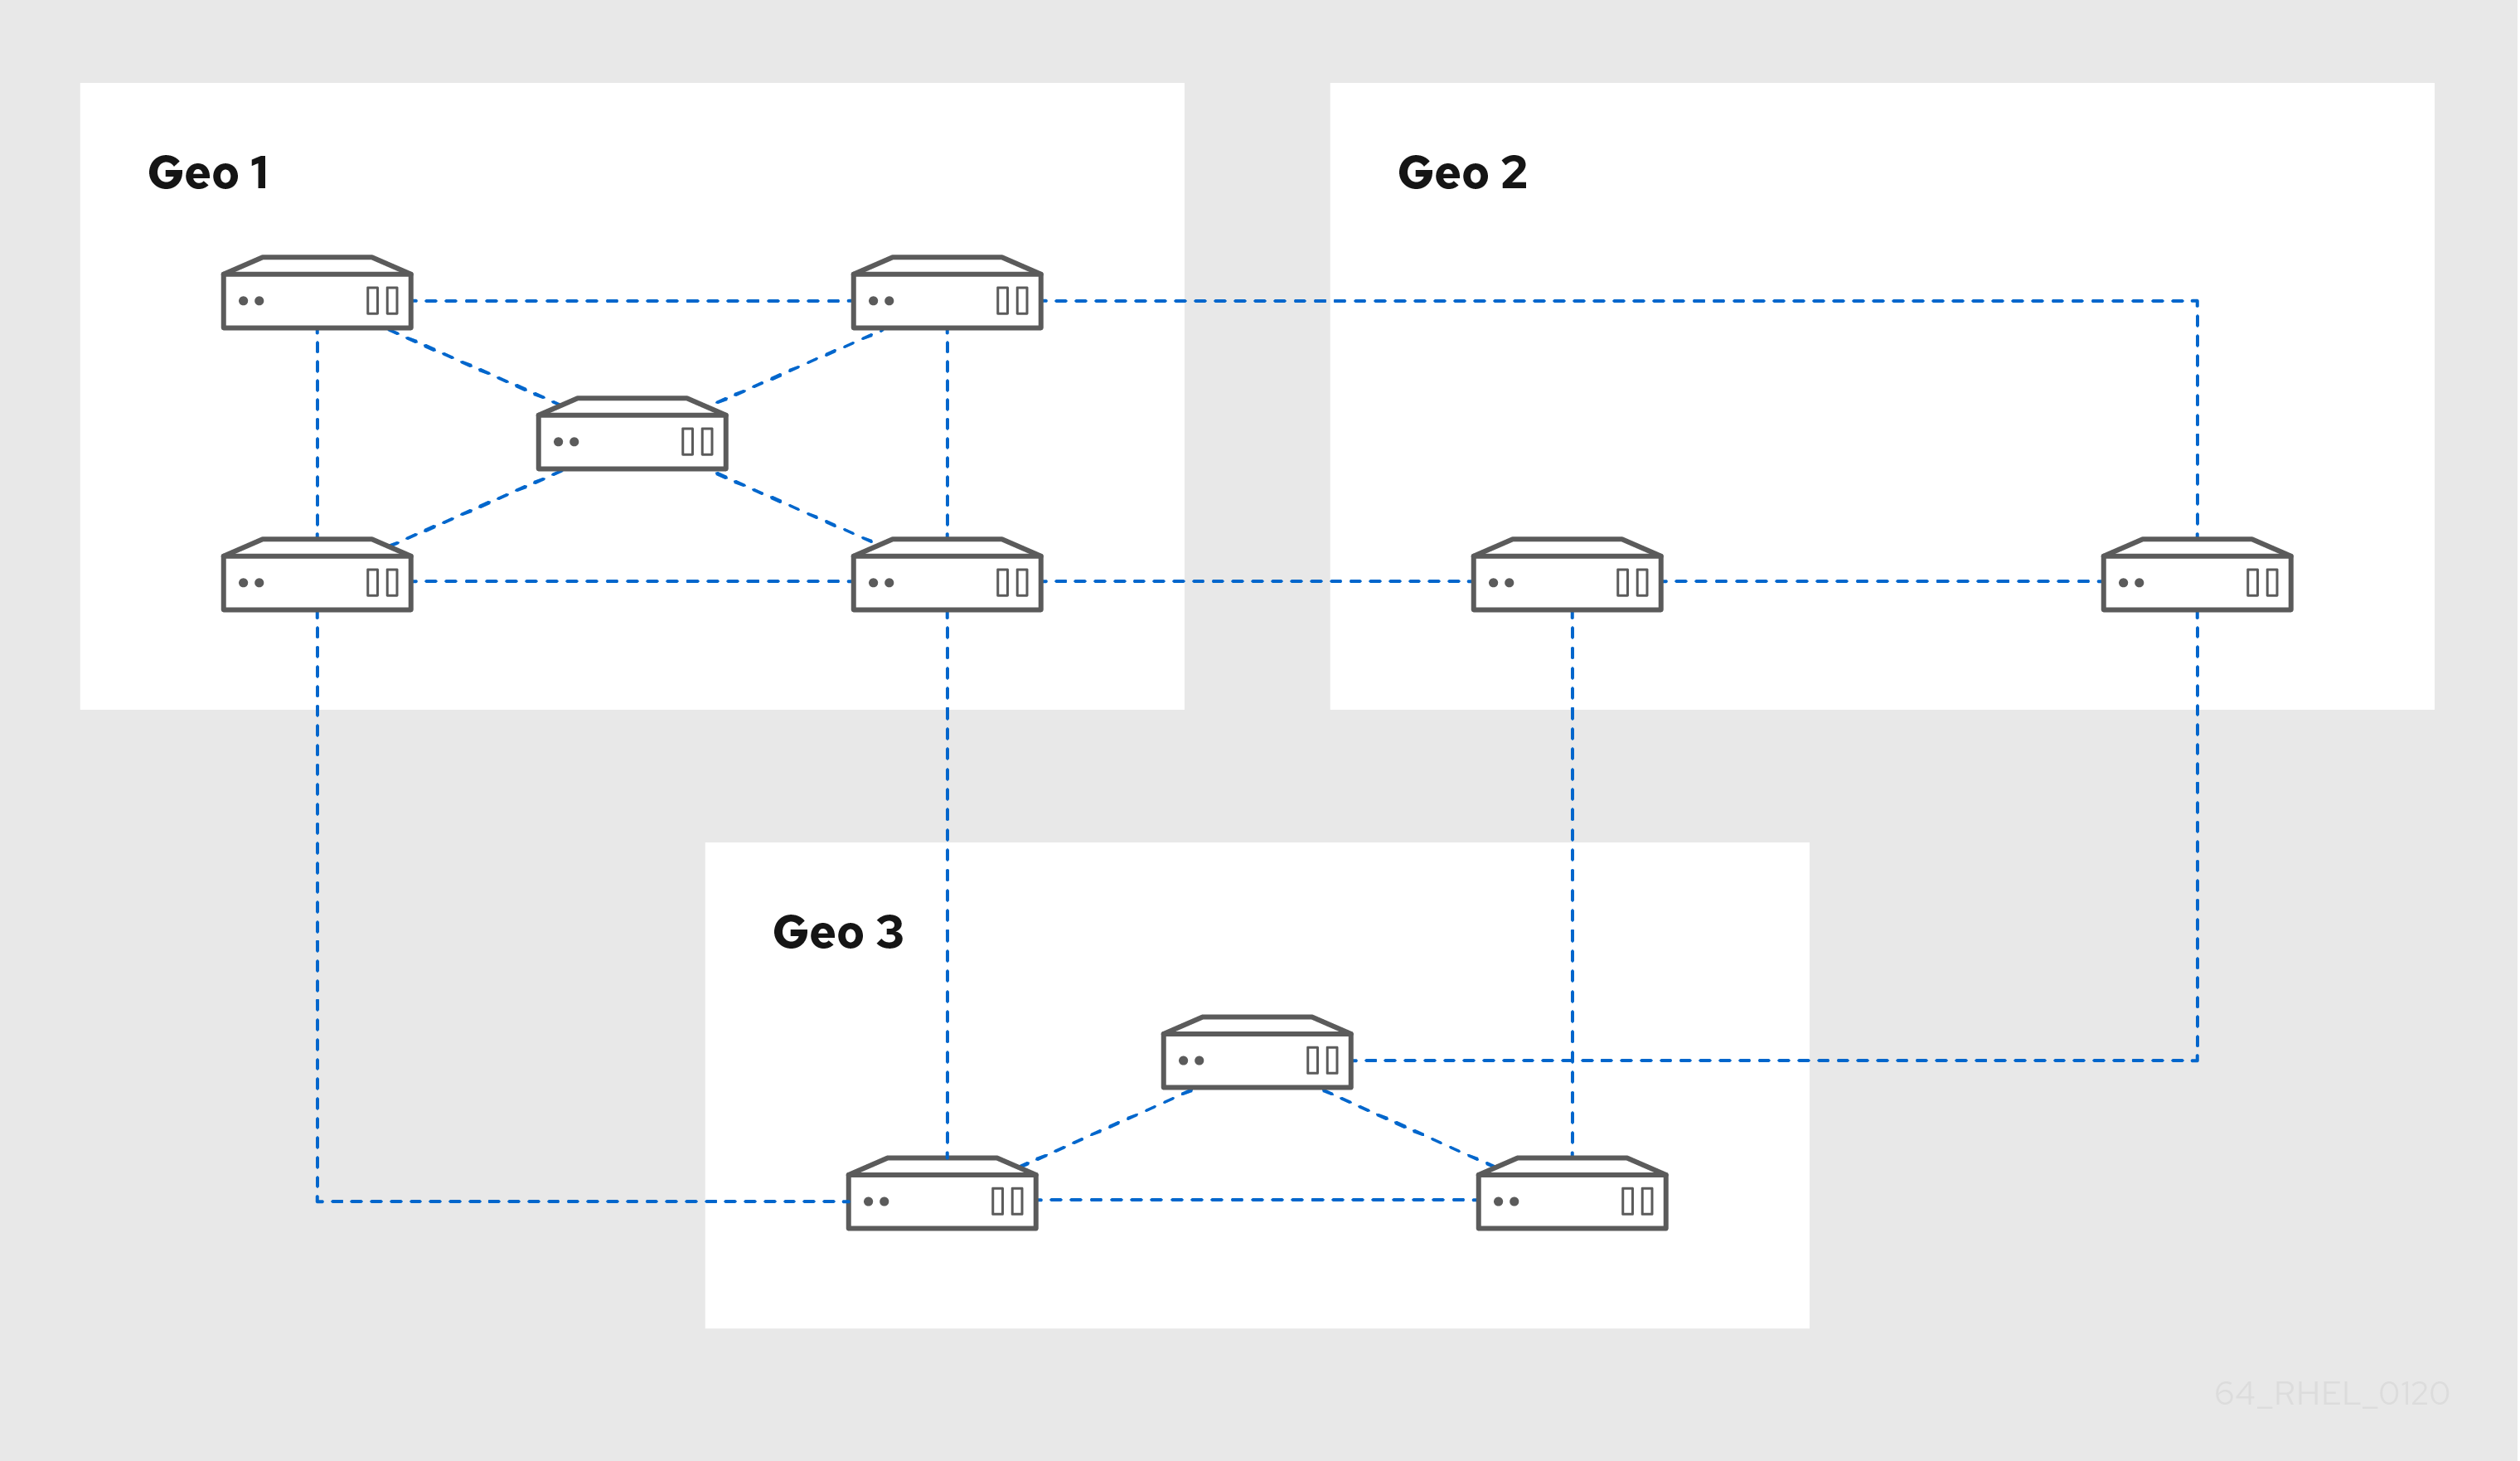 A diagram showing 3 data centers: Geo 1 has 5 servers each connected to the other - Geo 2 has two servers connected to each other - Geo 3 has 3 servers connected in a triangle. There are 2 connections from each Geo connecting two of its servers to 2 servers in the next Geo.